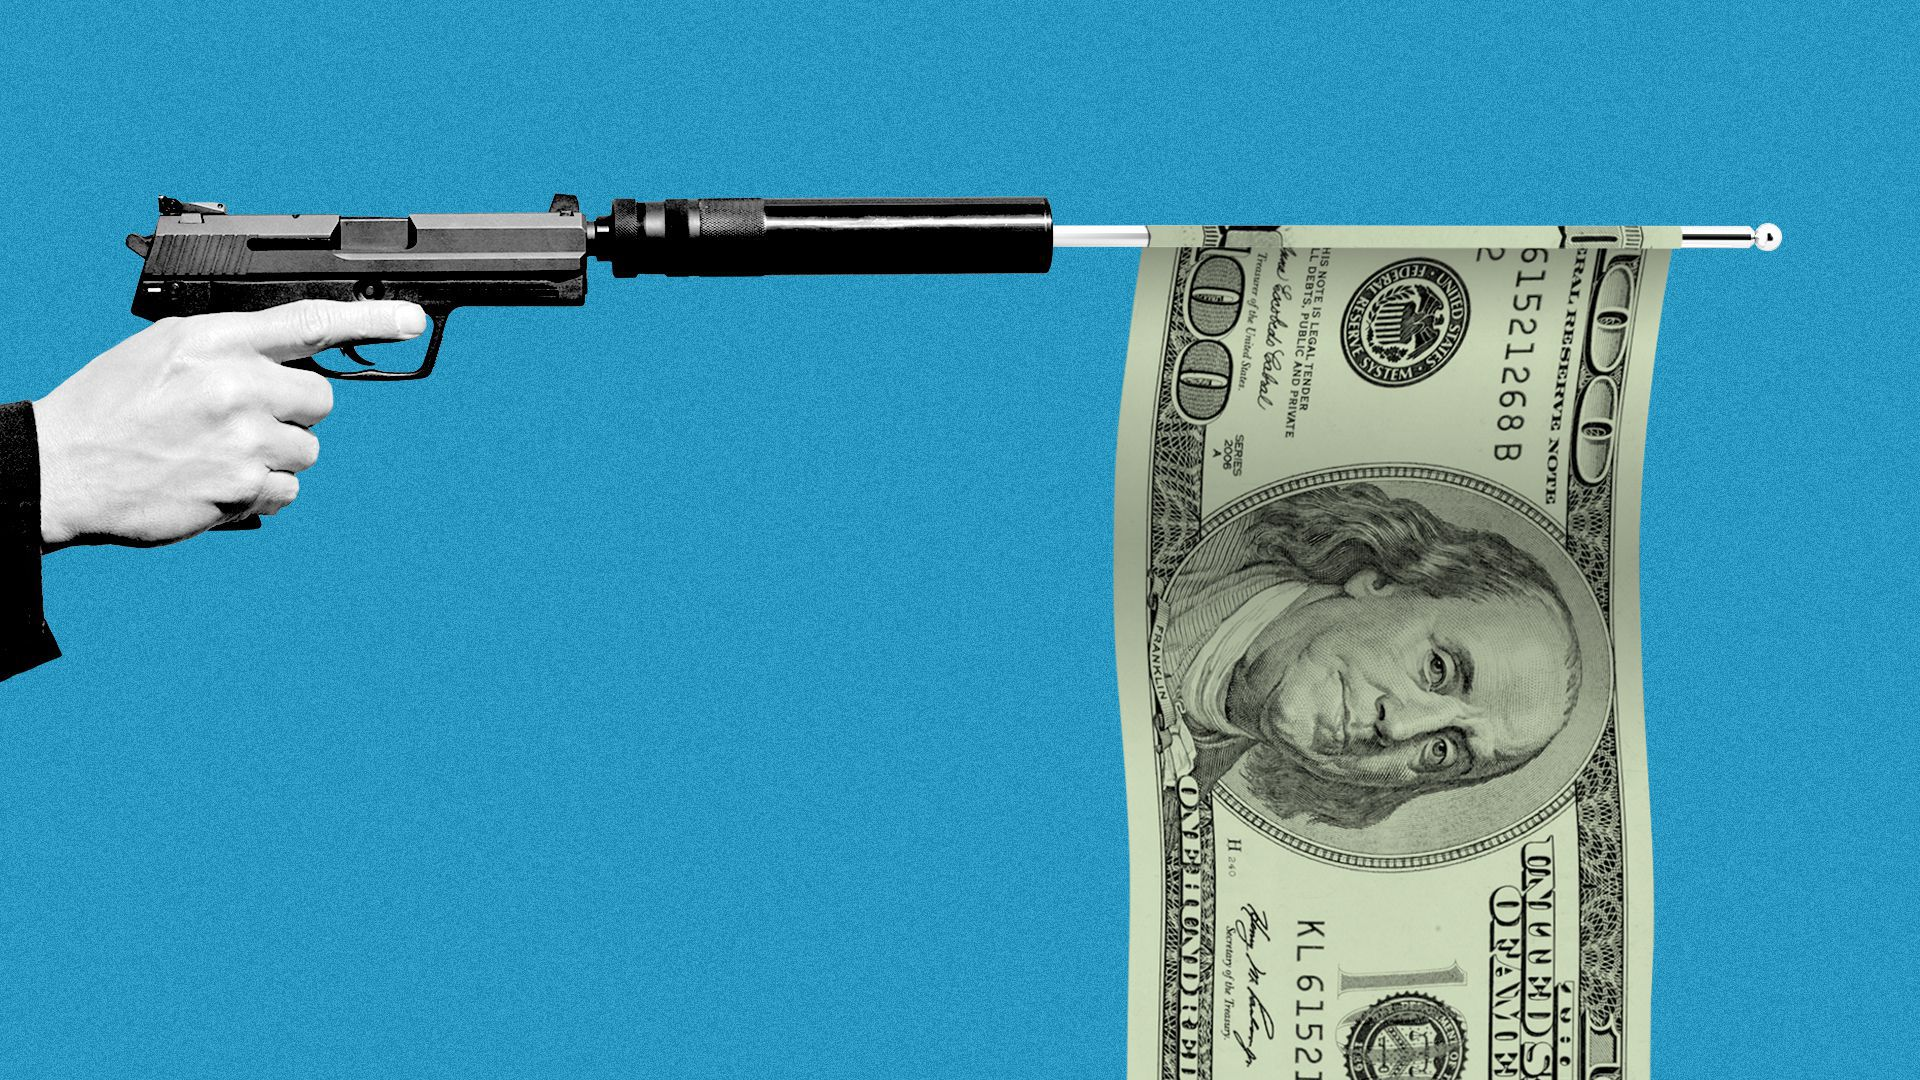 Illustration of a hand pointing a gun with a silencer, which has fired a flag in the form of a hundred-dollar bill.